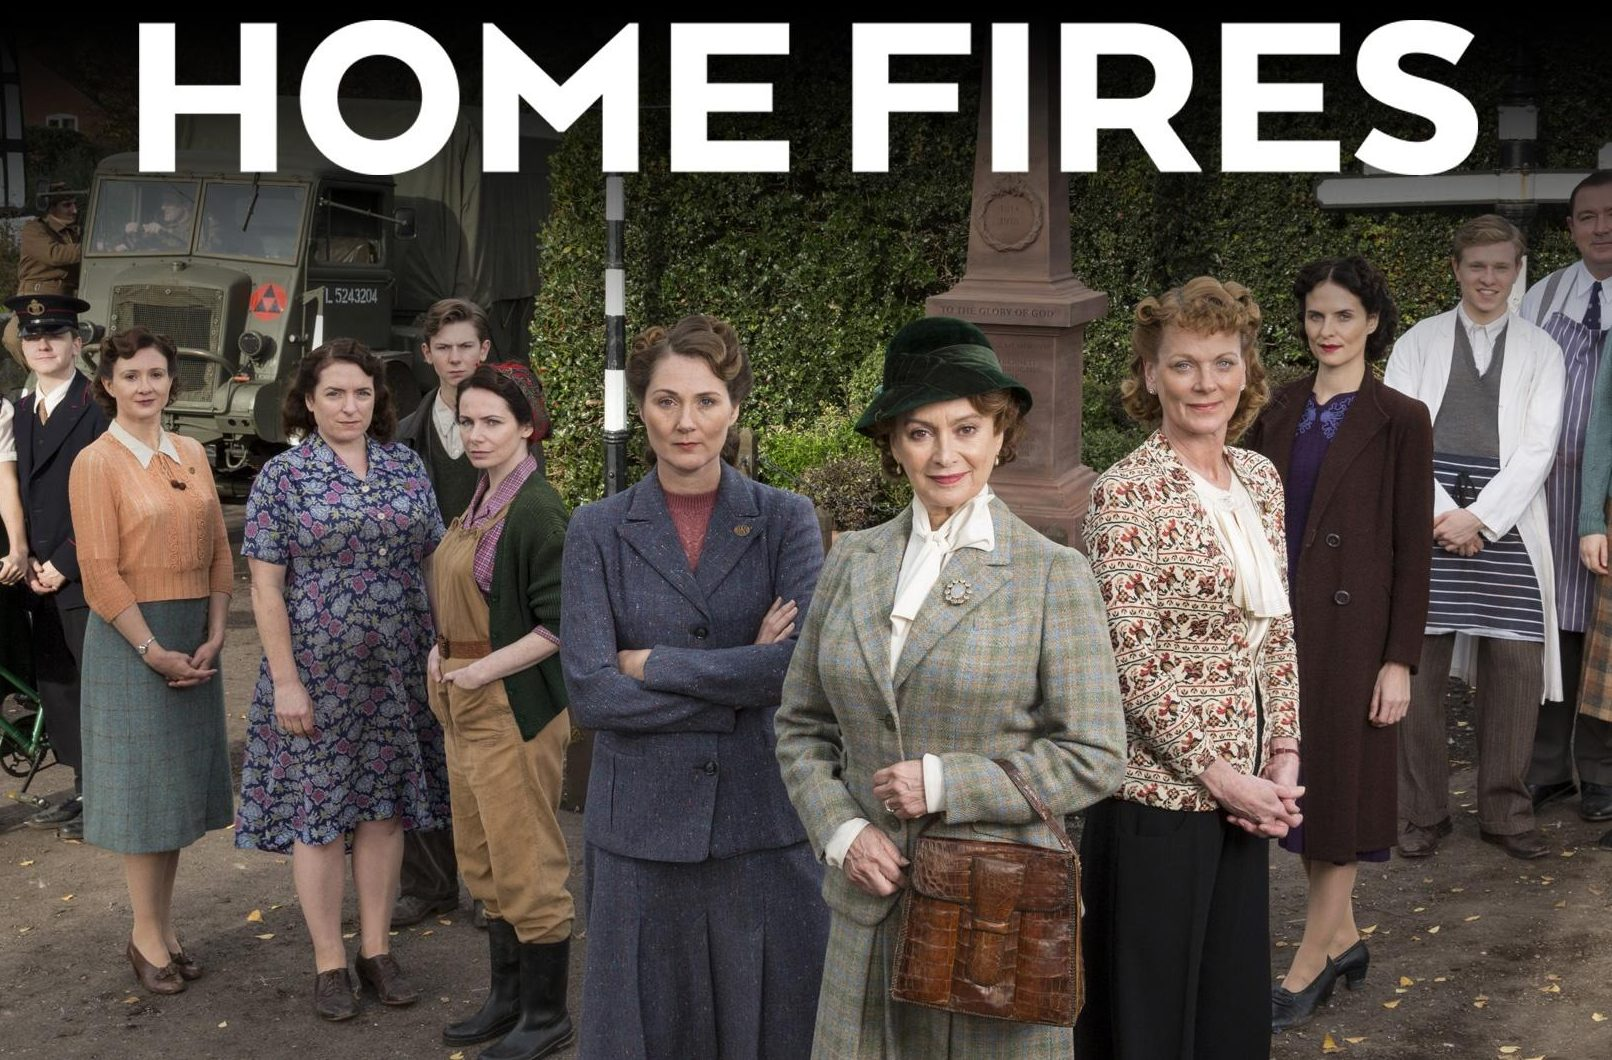 Homefires on KLCS|Passport